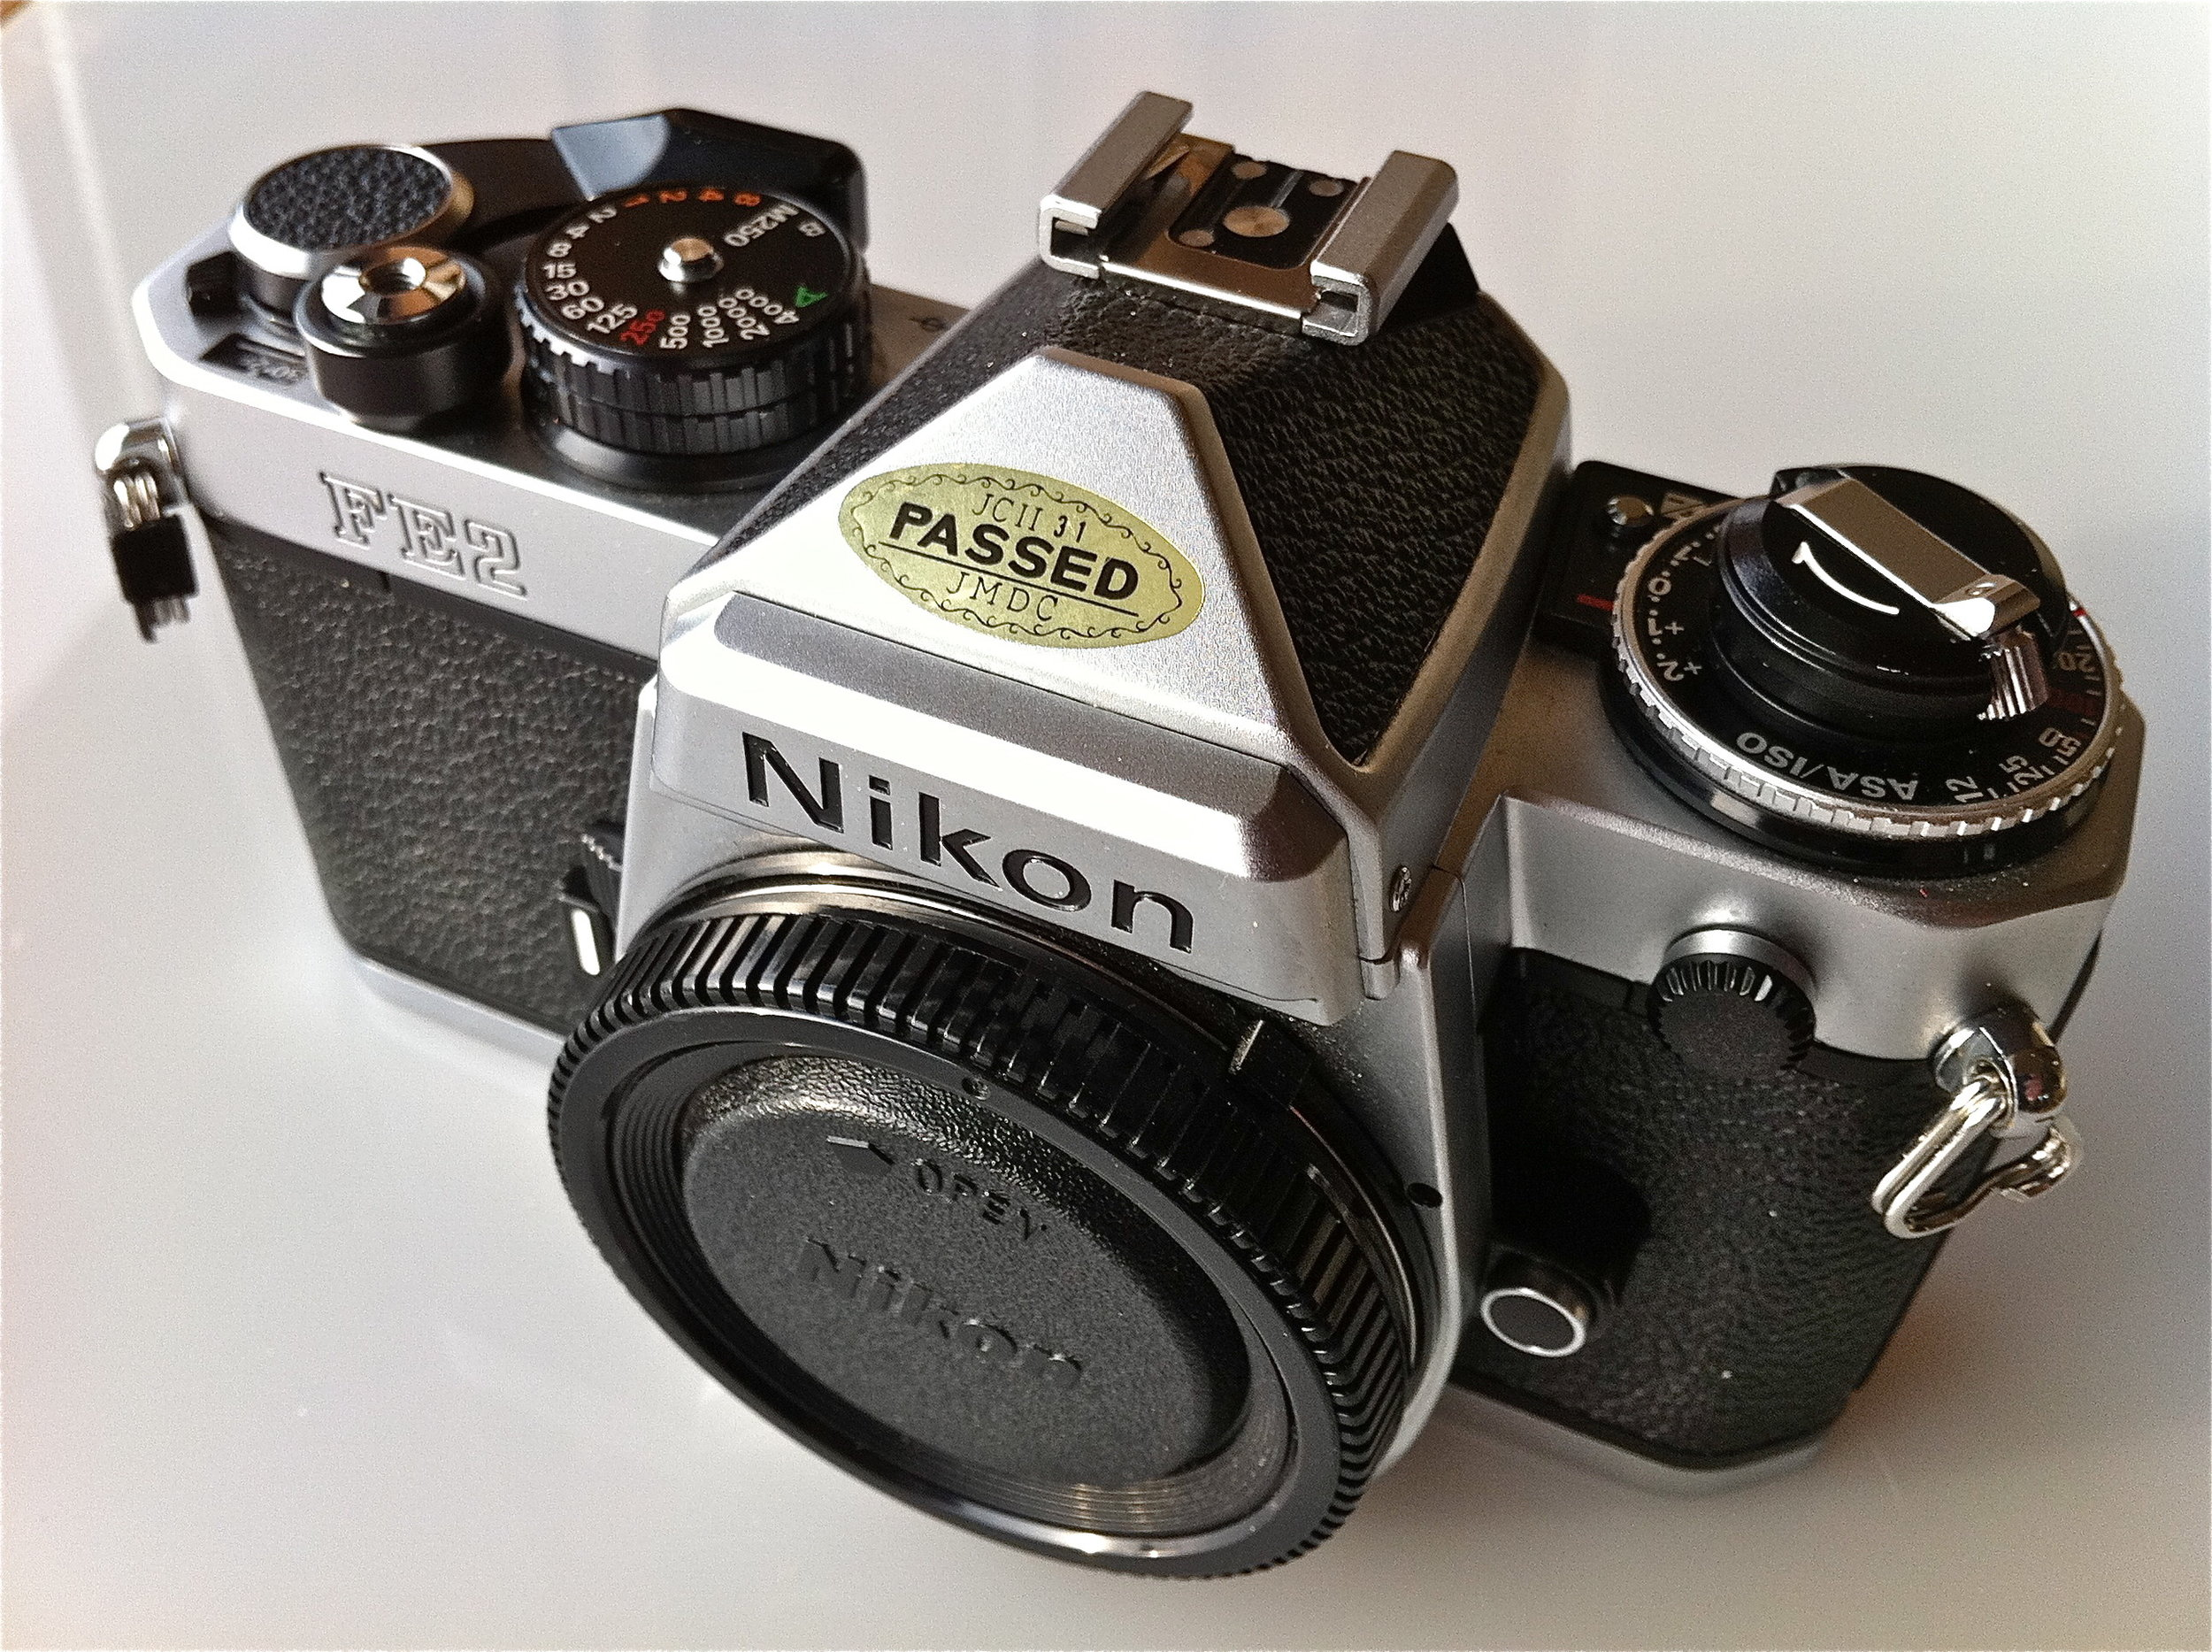 The camera that started it all…The Nikon FE2